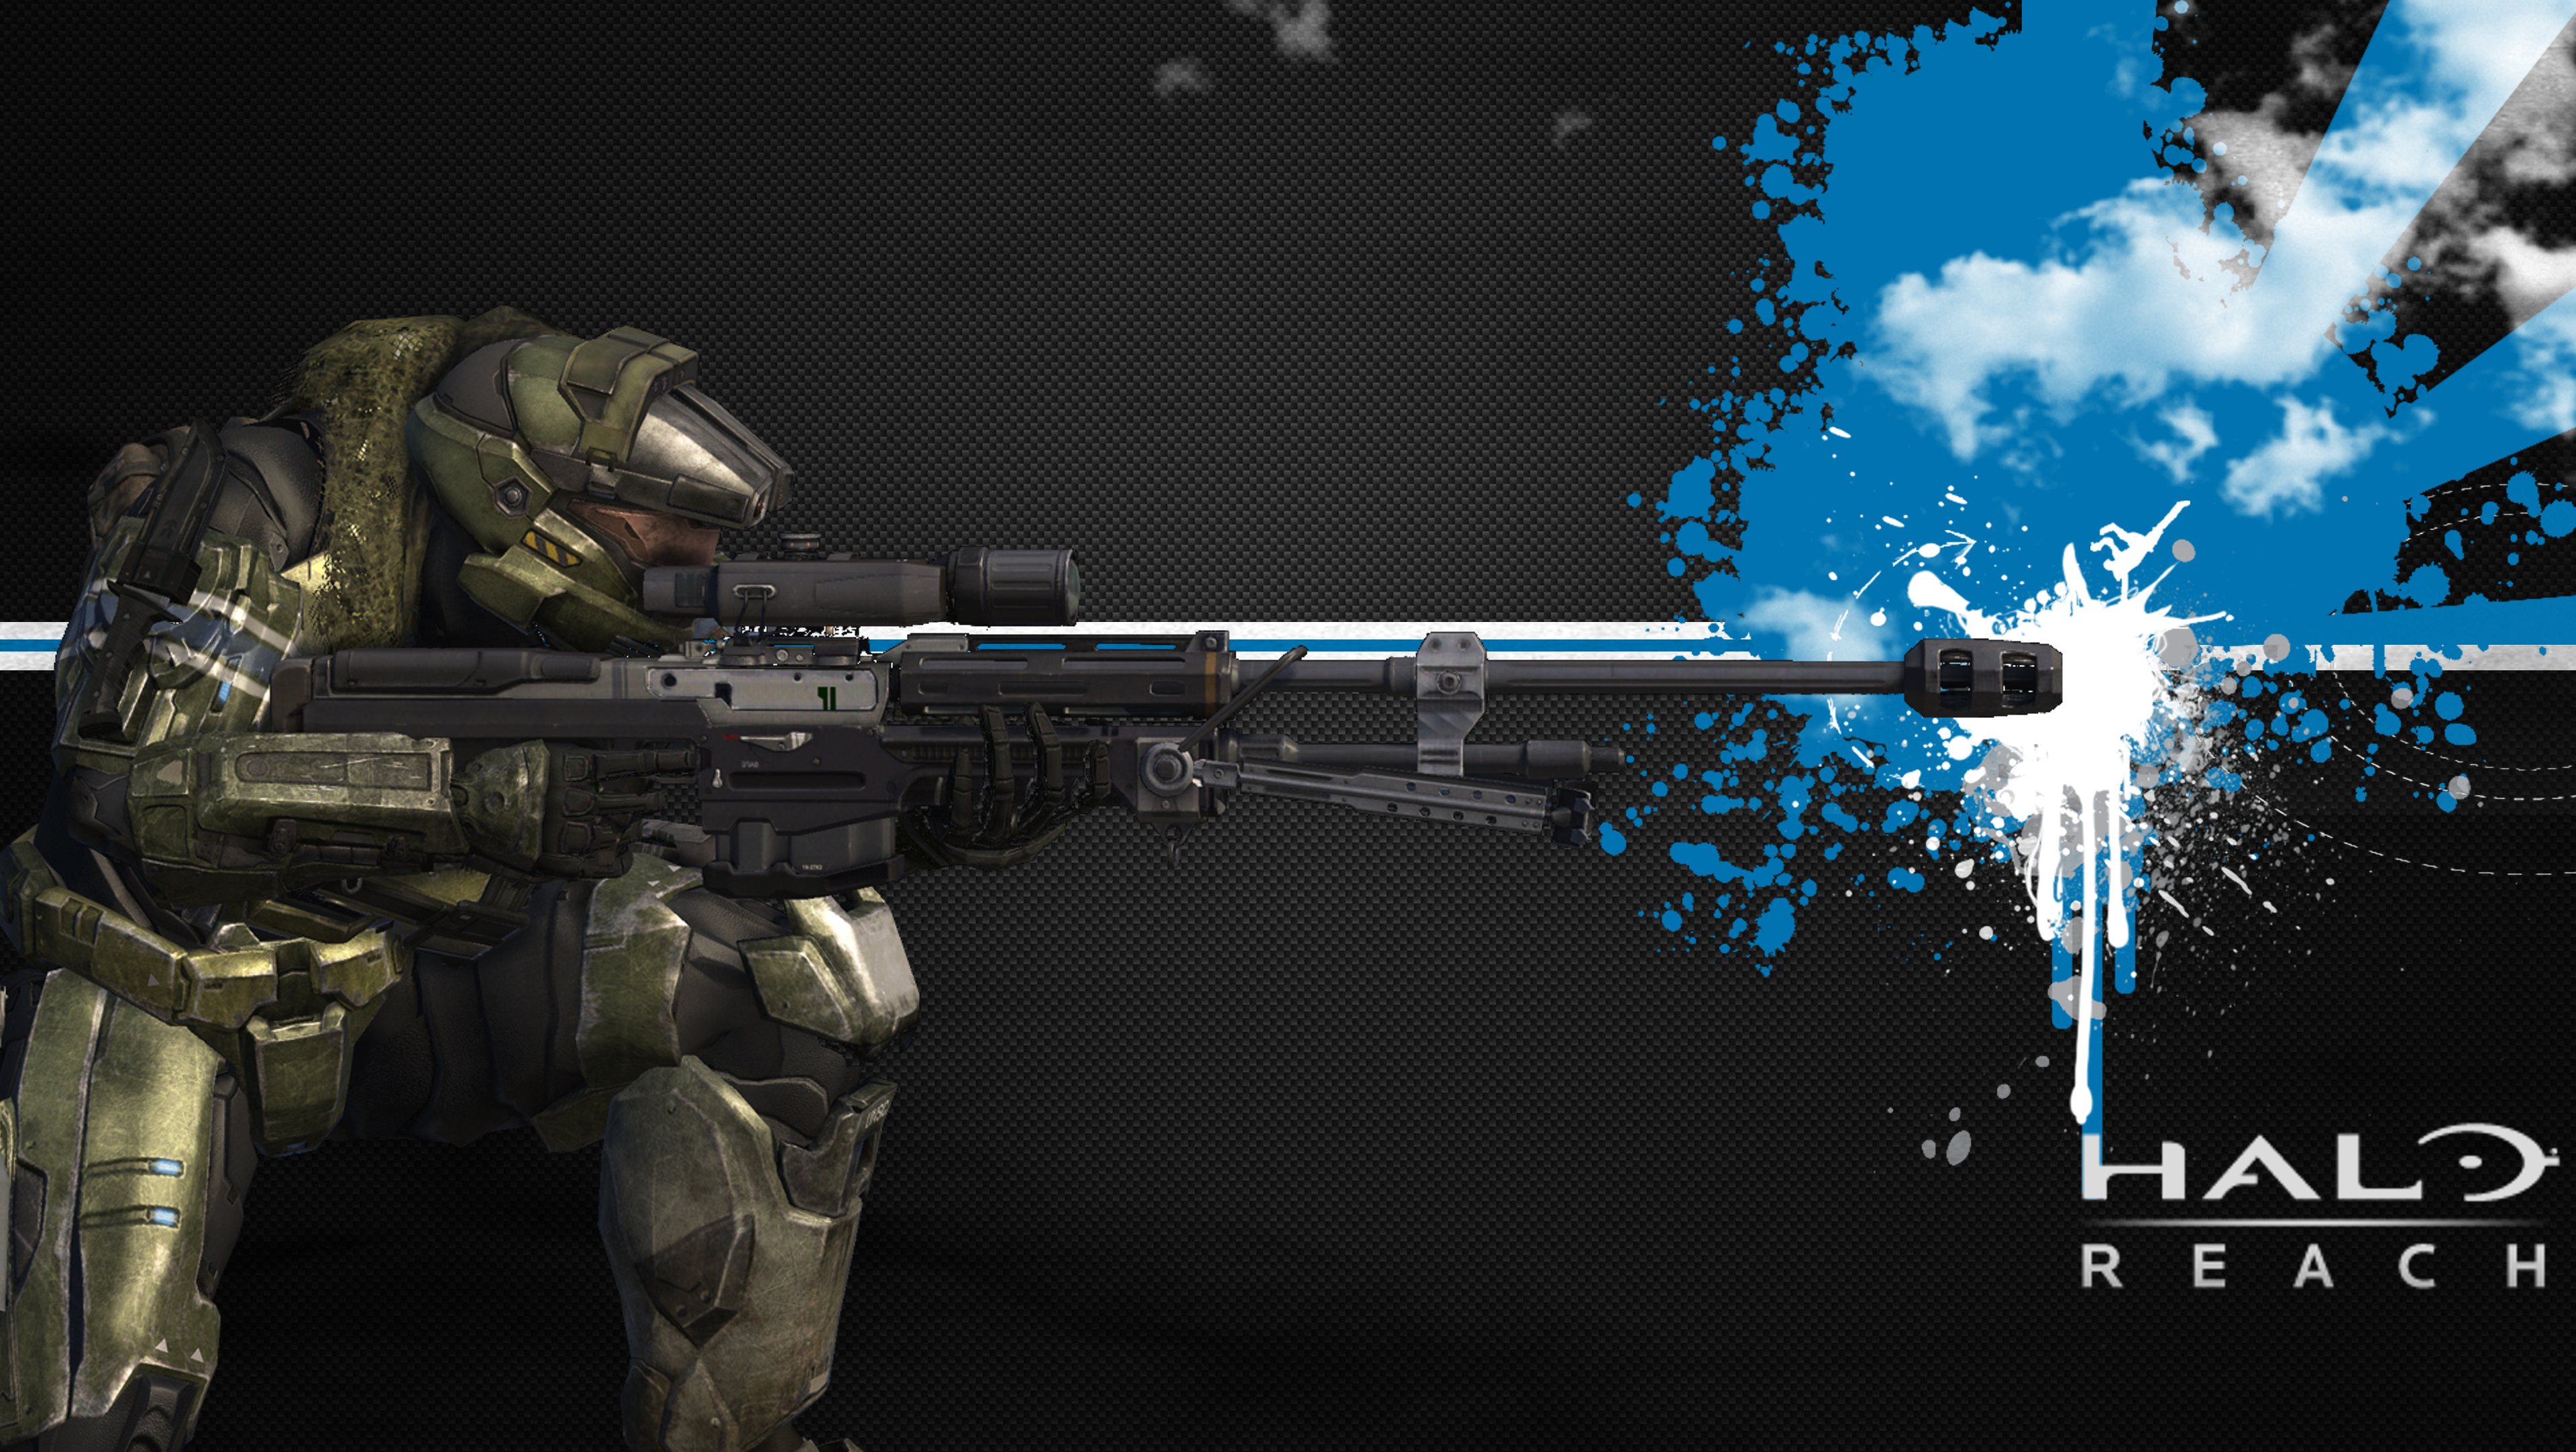 comentario   Bonitos Wallpapers de Halo D 3840x2164